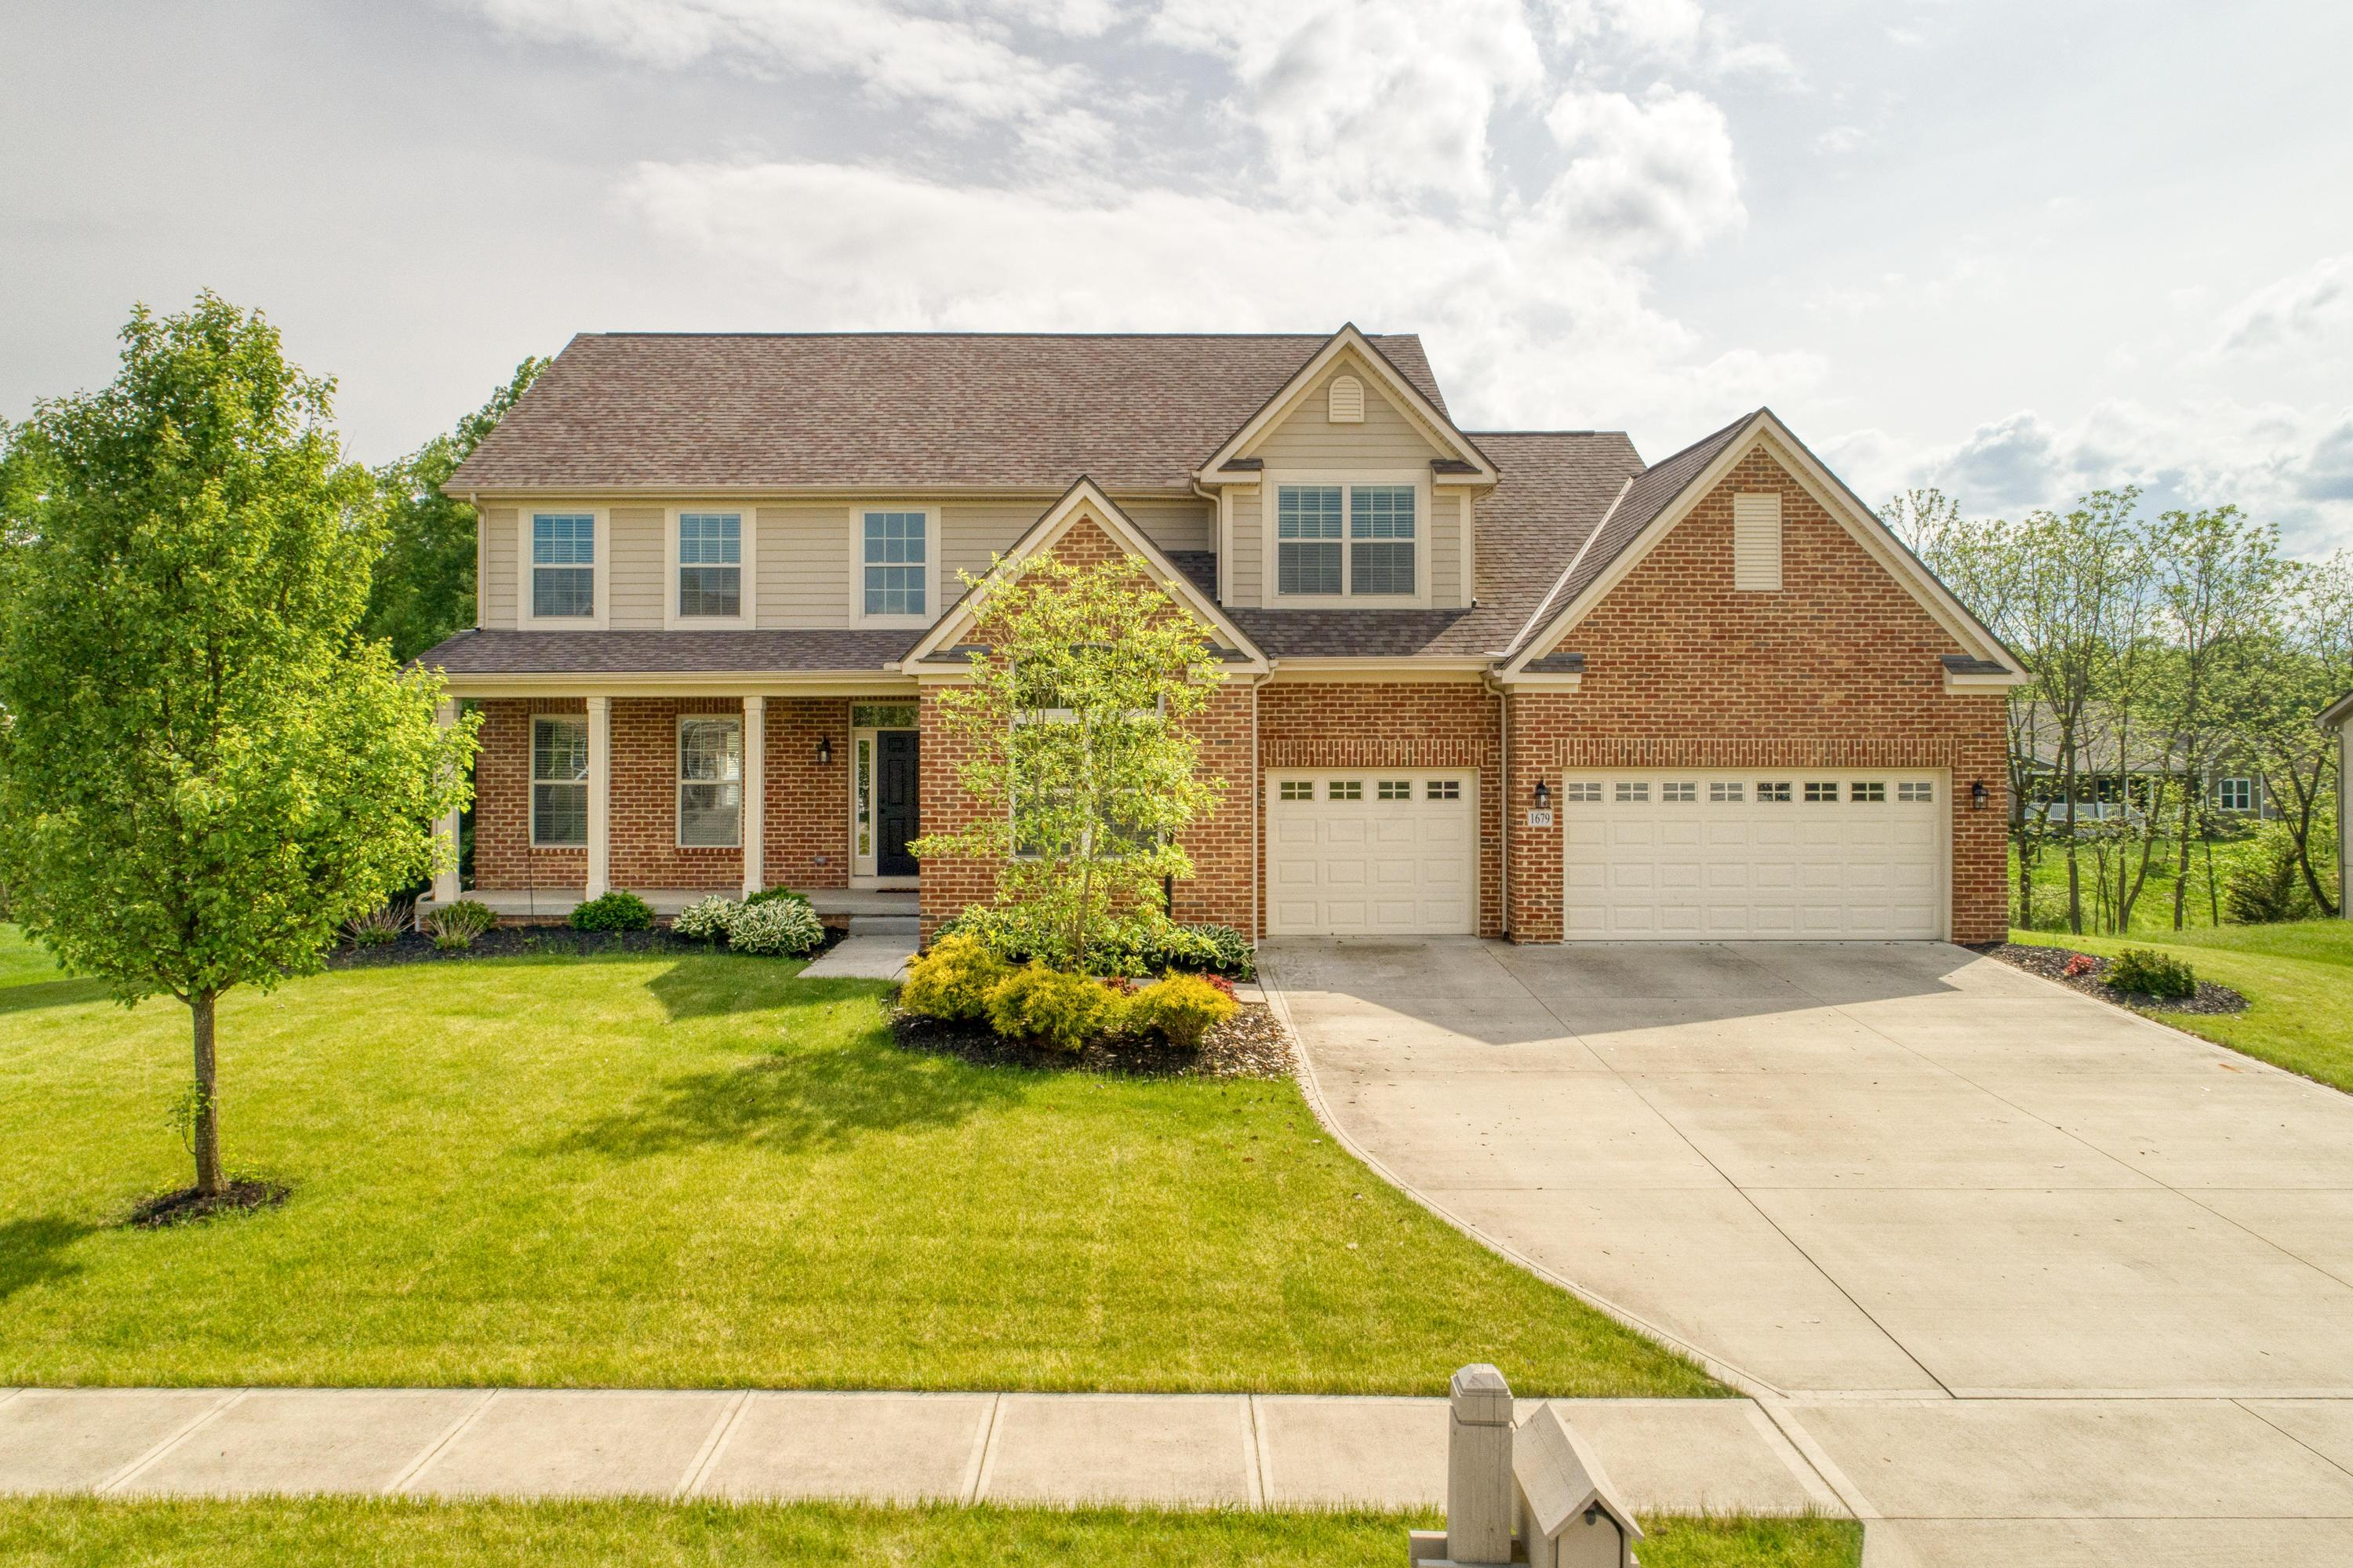 Photo of 1679 Forest View Drive, Pataskala, OH 43062